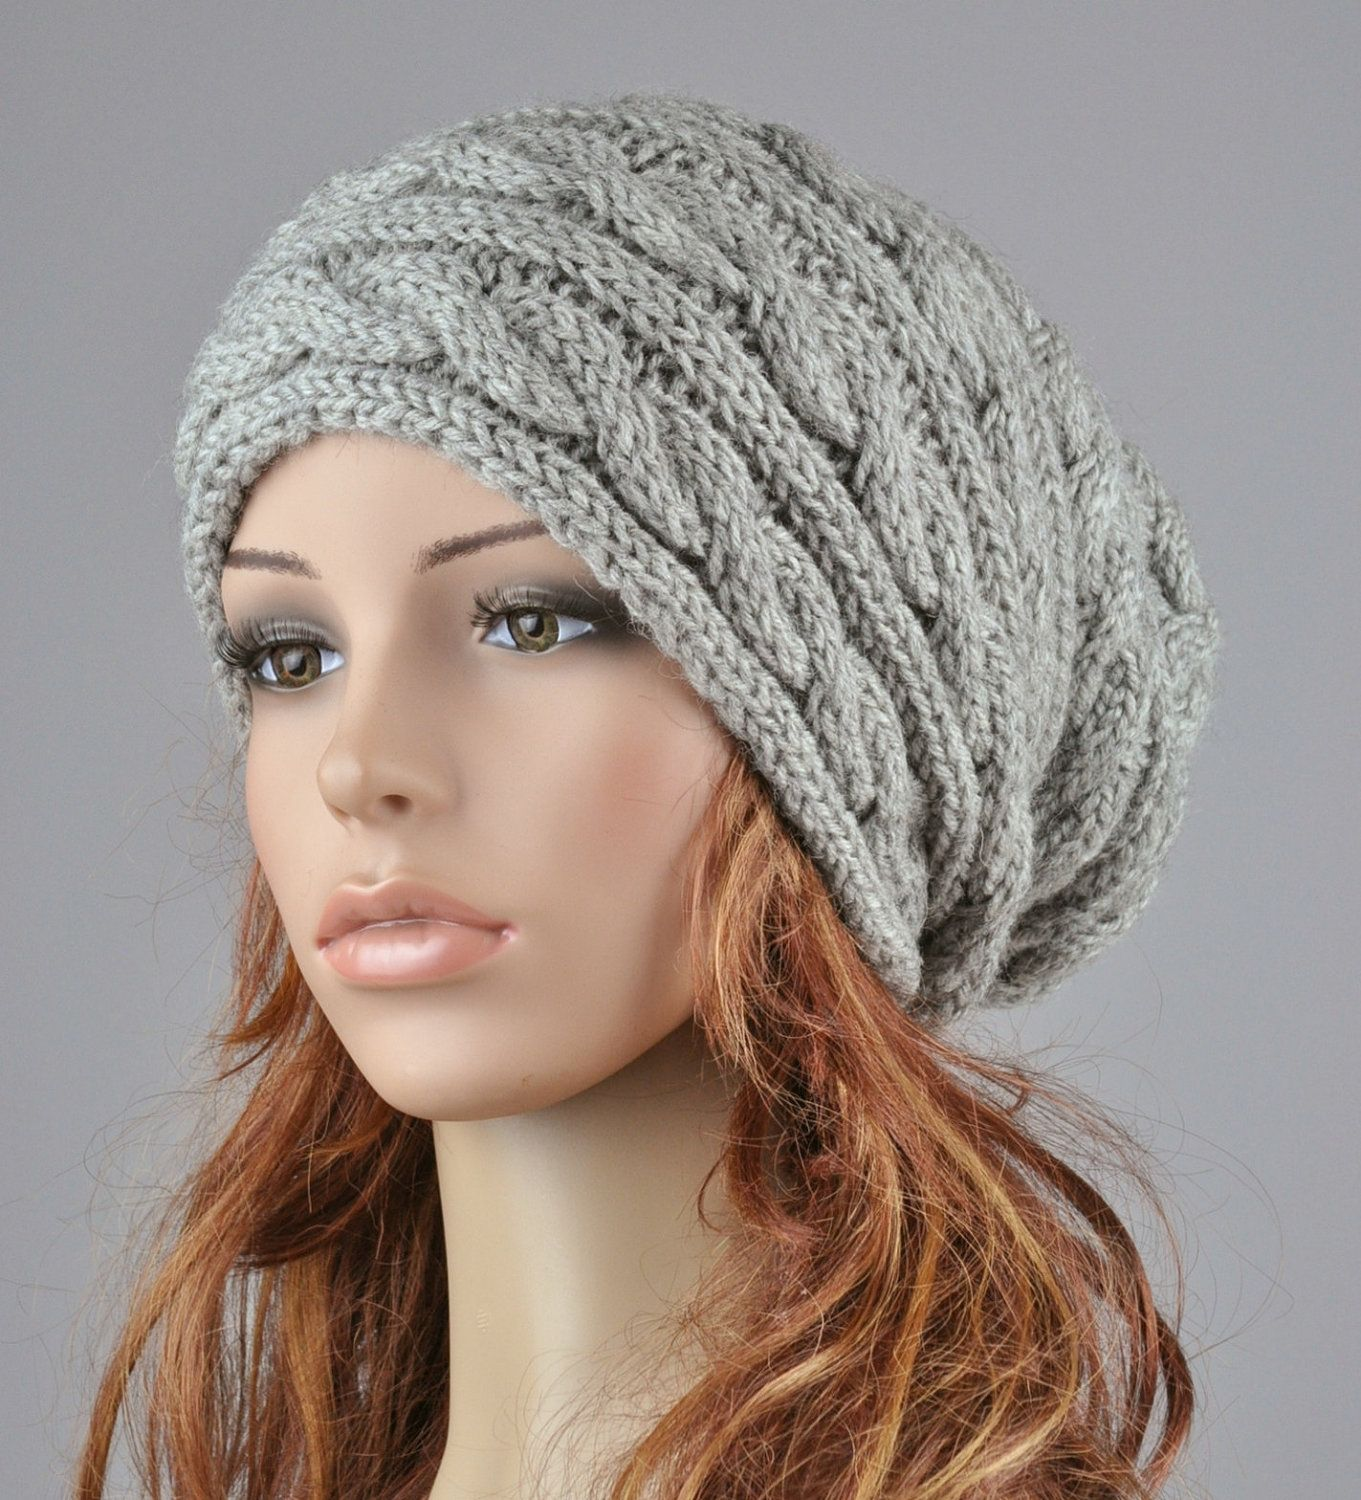 Hand knit hat slouchy cable hat in grey 3800 via etsy hand knit hat slouchy cable hat in grey 3800 via etsy bankloansurffo Choice Image